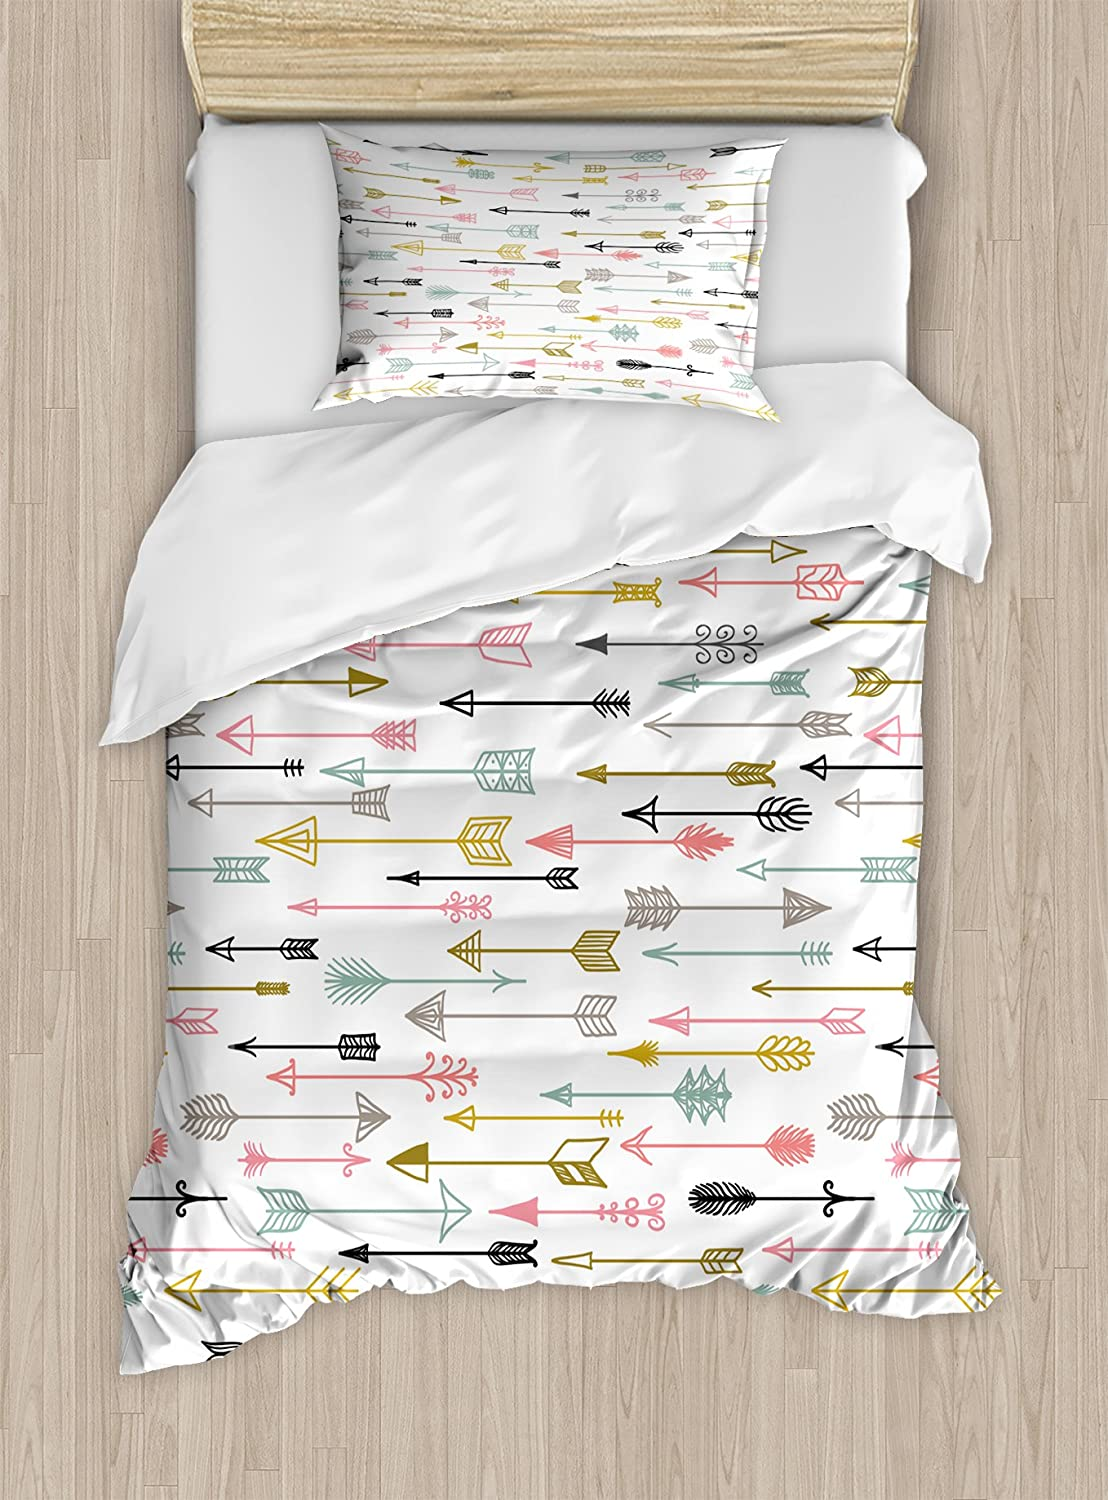 American Aztec Najavo Inspired Style Artwork Image, Decorative 2 Piece Bedding Set